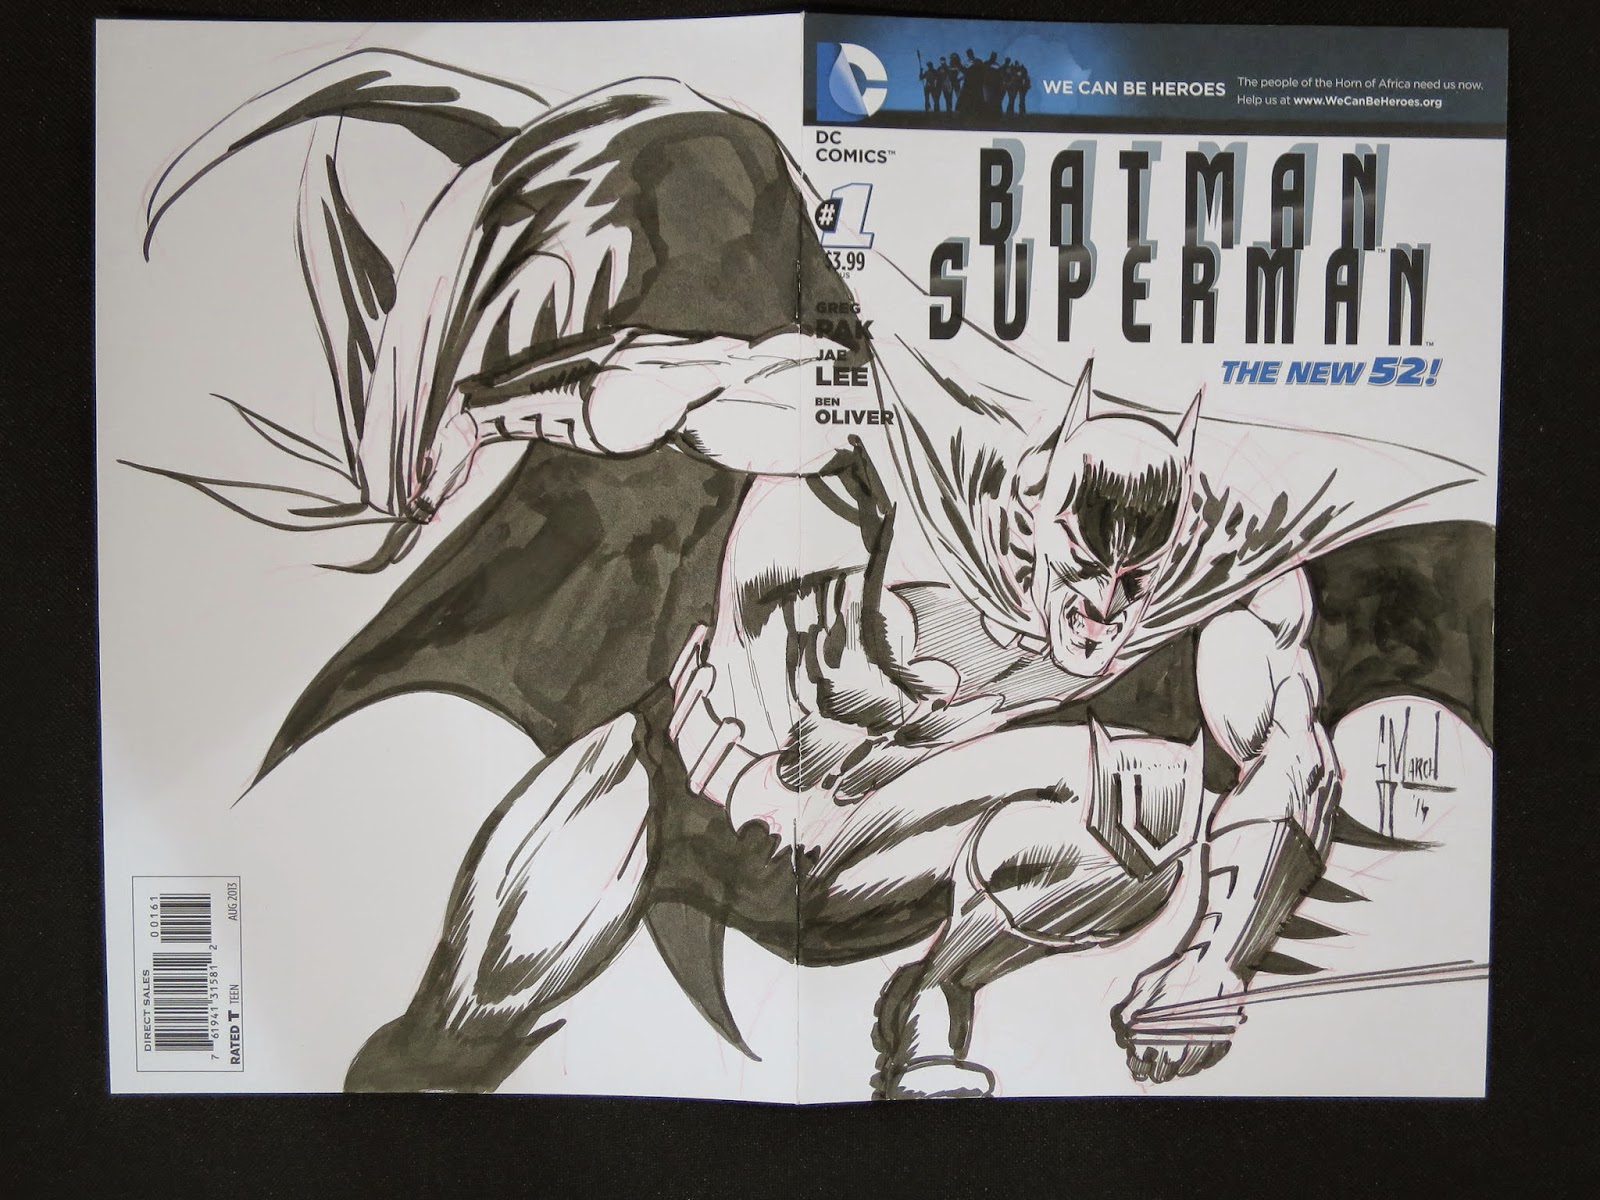 Commissions from last weekend at the PHILADELPHIA WIZARD WORLD Comic Con by Guillem March